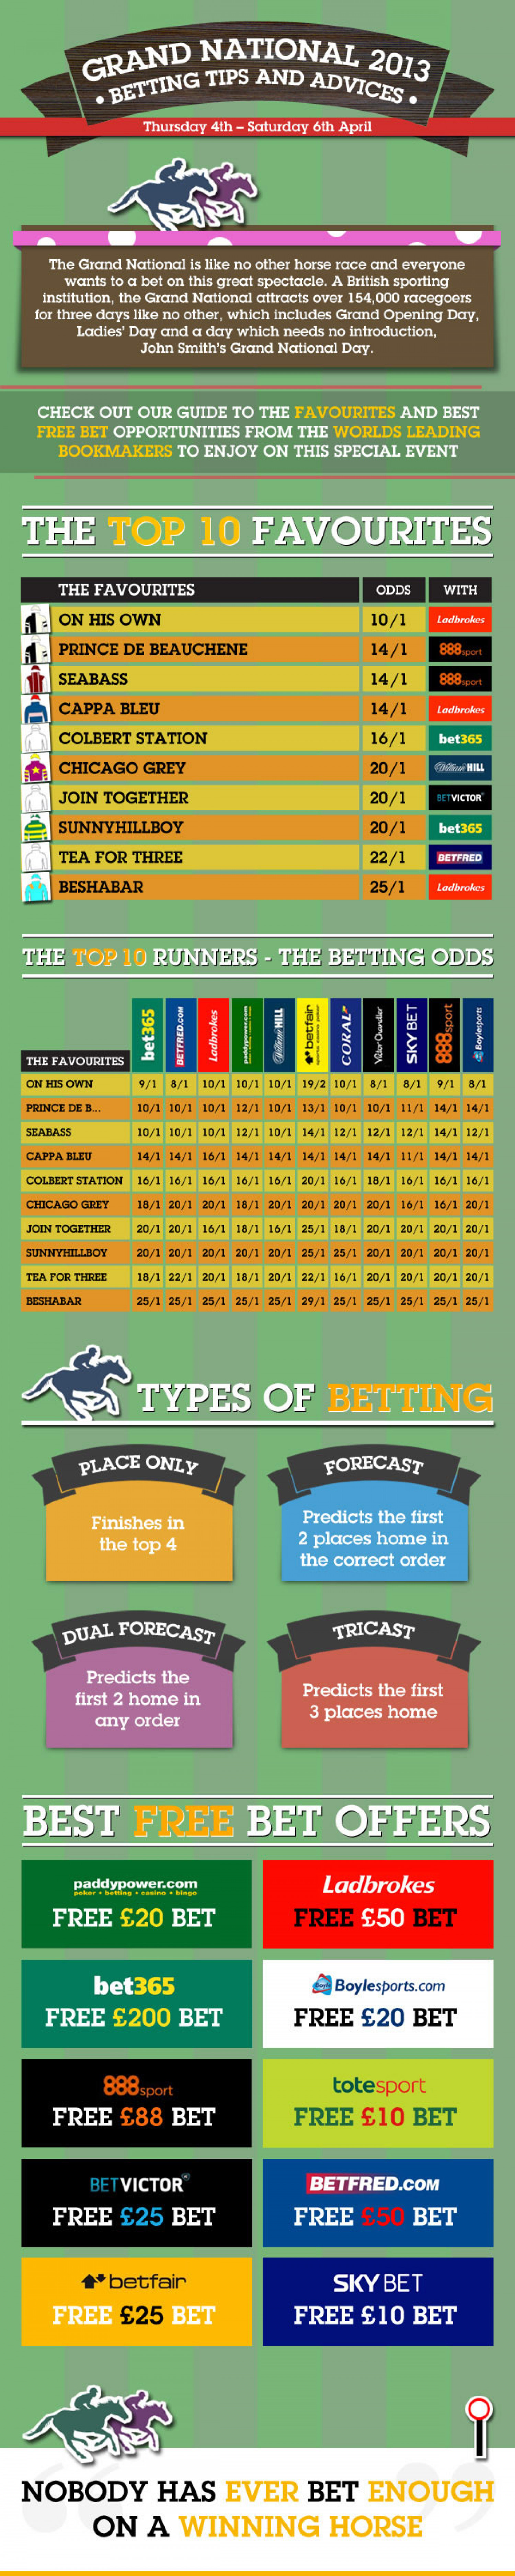 Grand National 2013 Betting tips and advice infographic Infographic